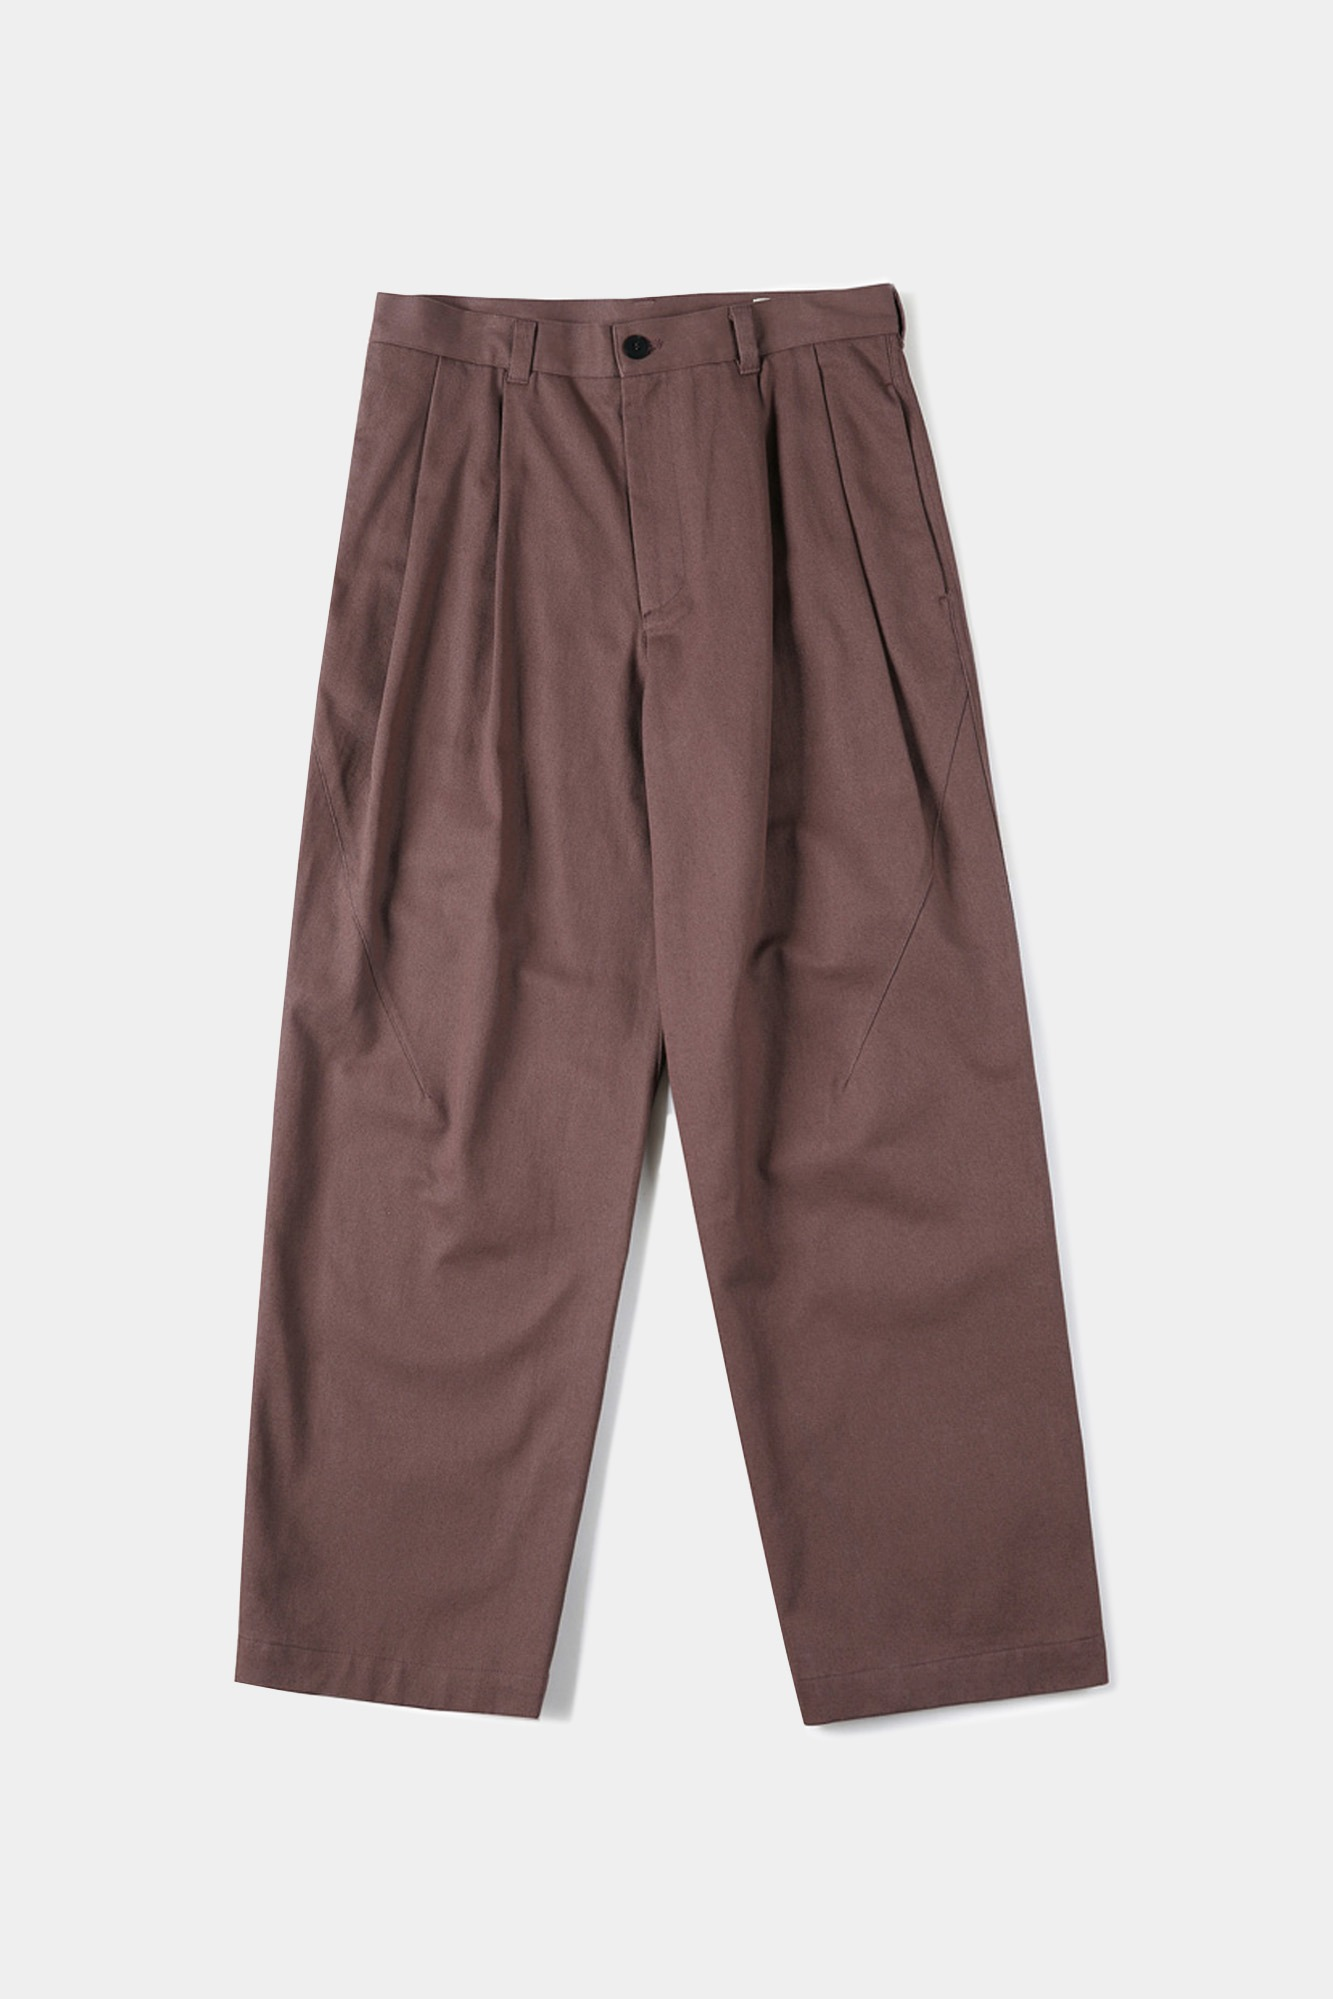 "SHIRTER Two Tuck Jar Pants ""Marsala"""